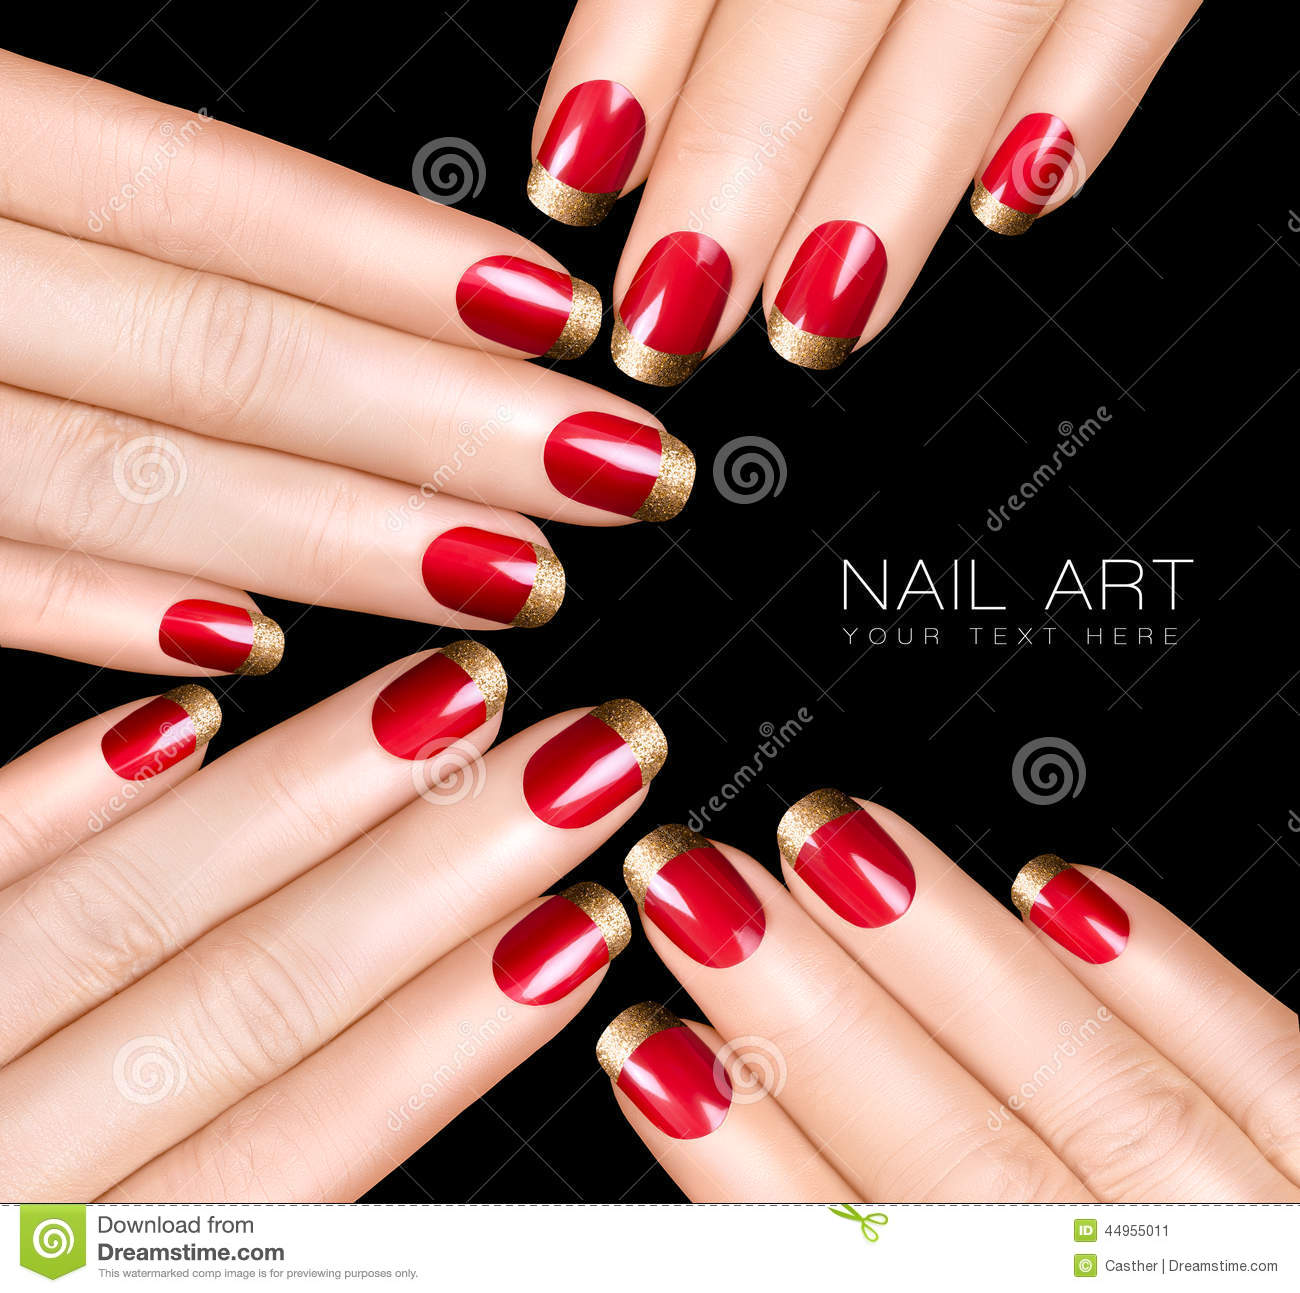 Nail Art Trend Luxury Nail Polish Nail Stickers Stock Image